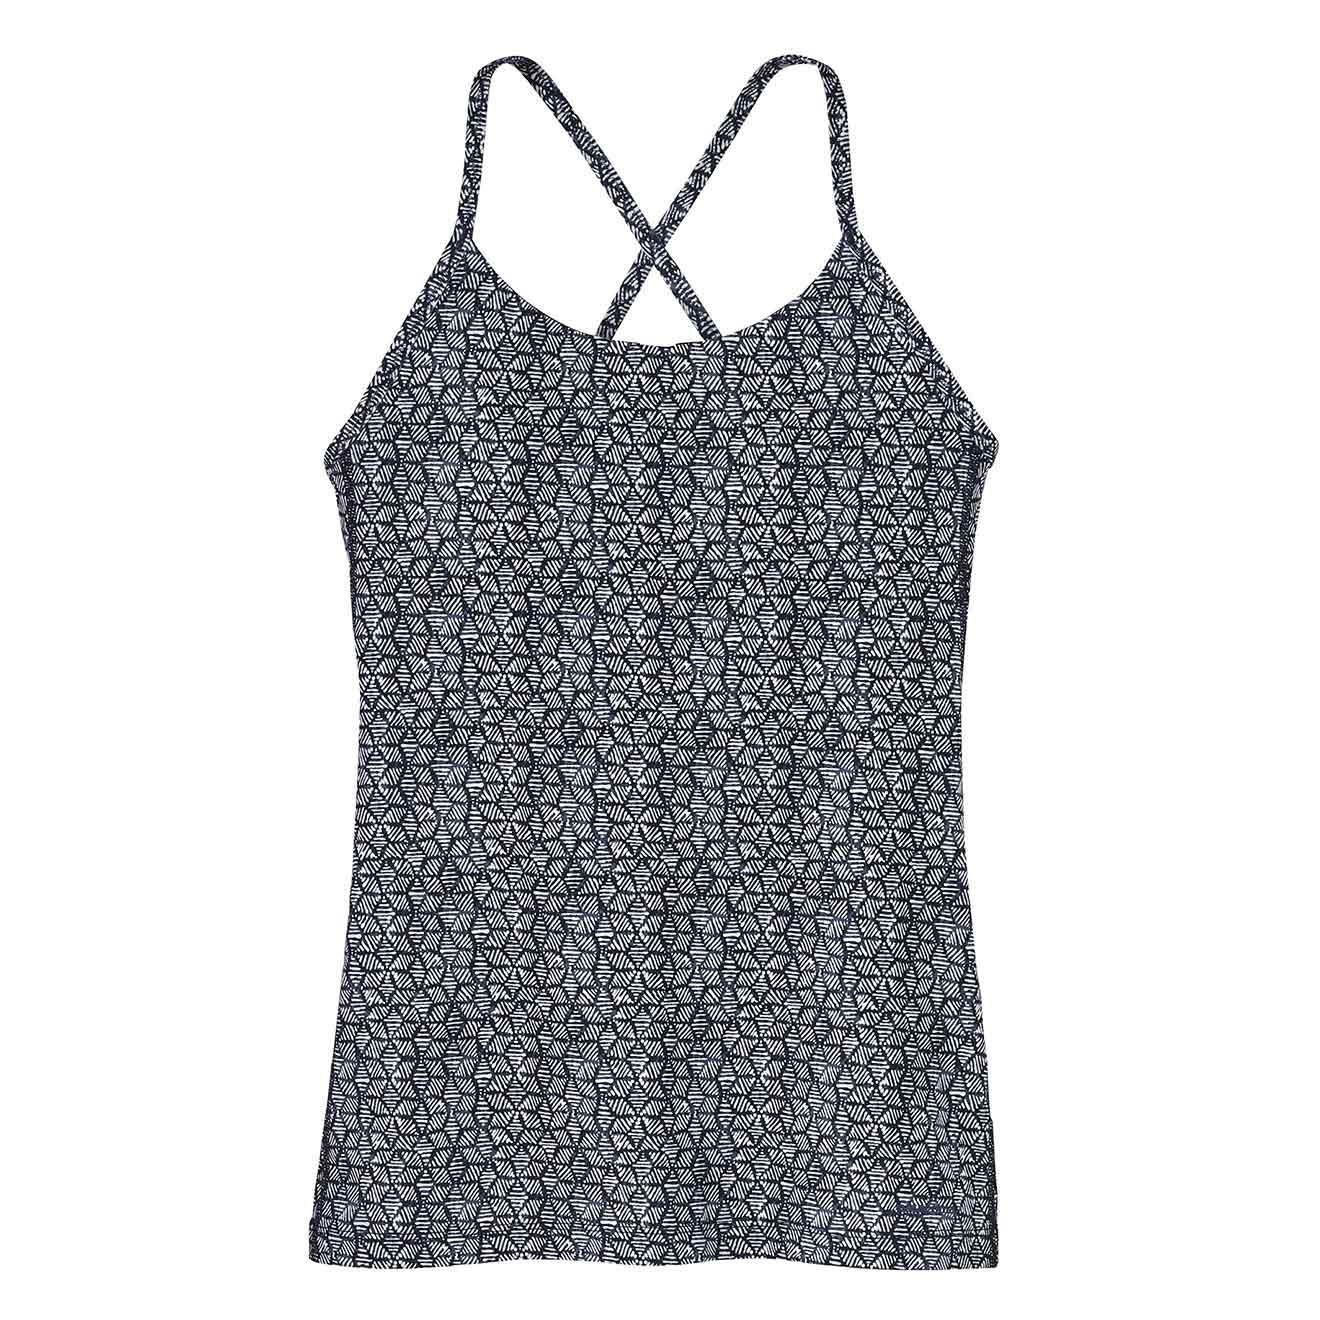 Birch White Patagonia Womens Cross Beta Tank Baltic Hex SALE